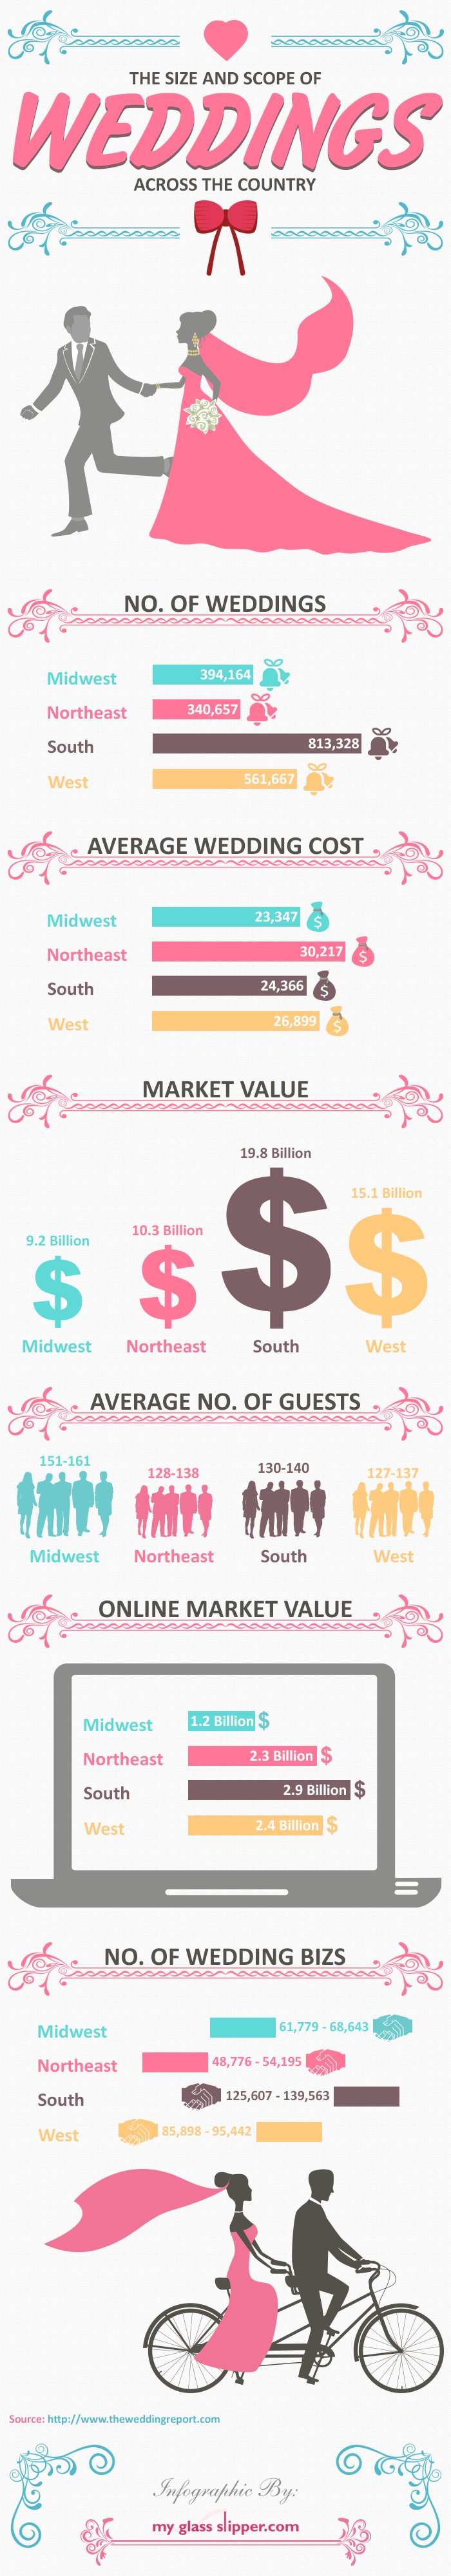 Wedding Industry Growth Value